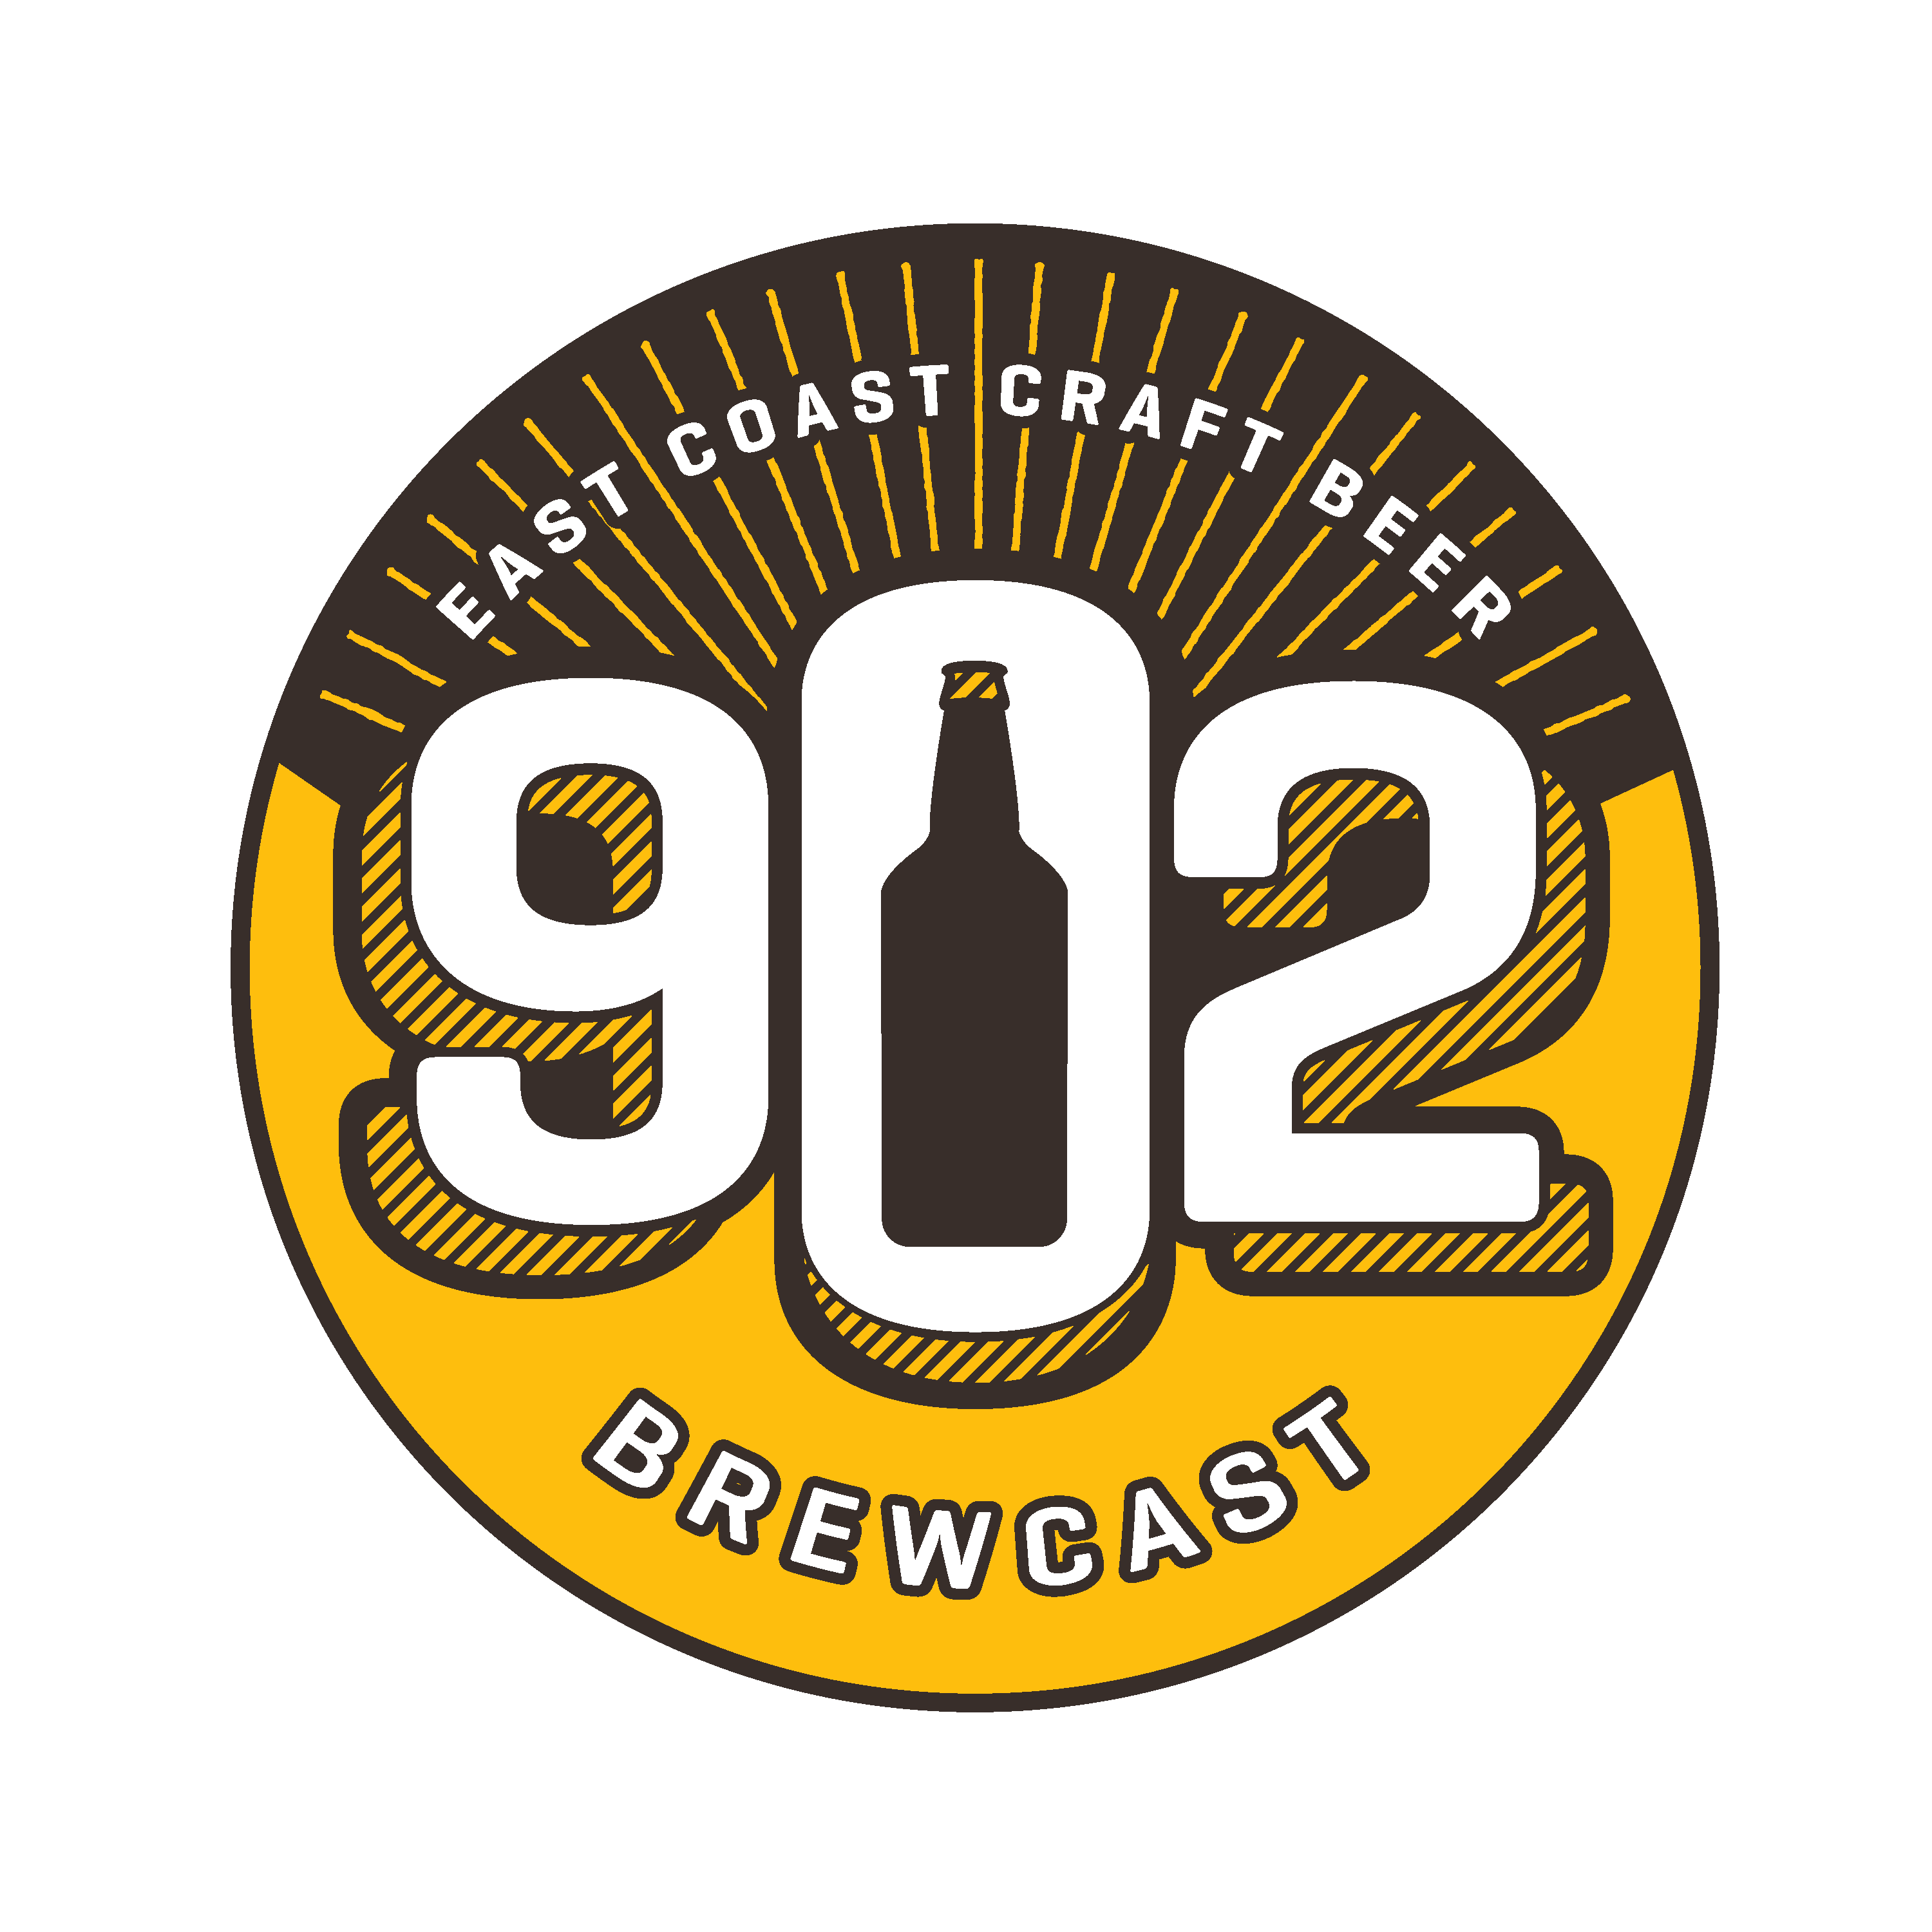 Brewcast 20logo